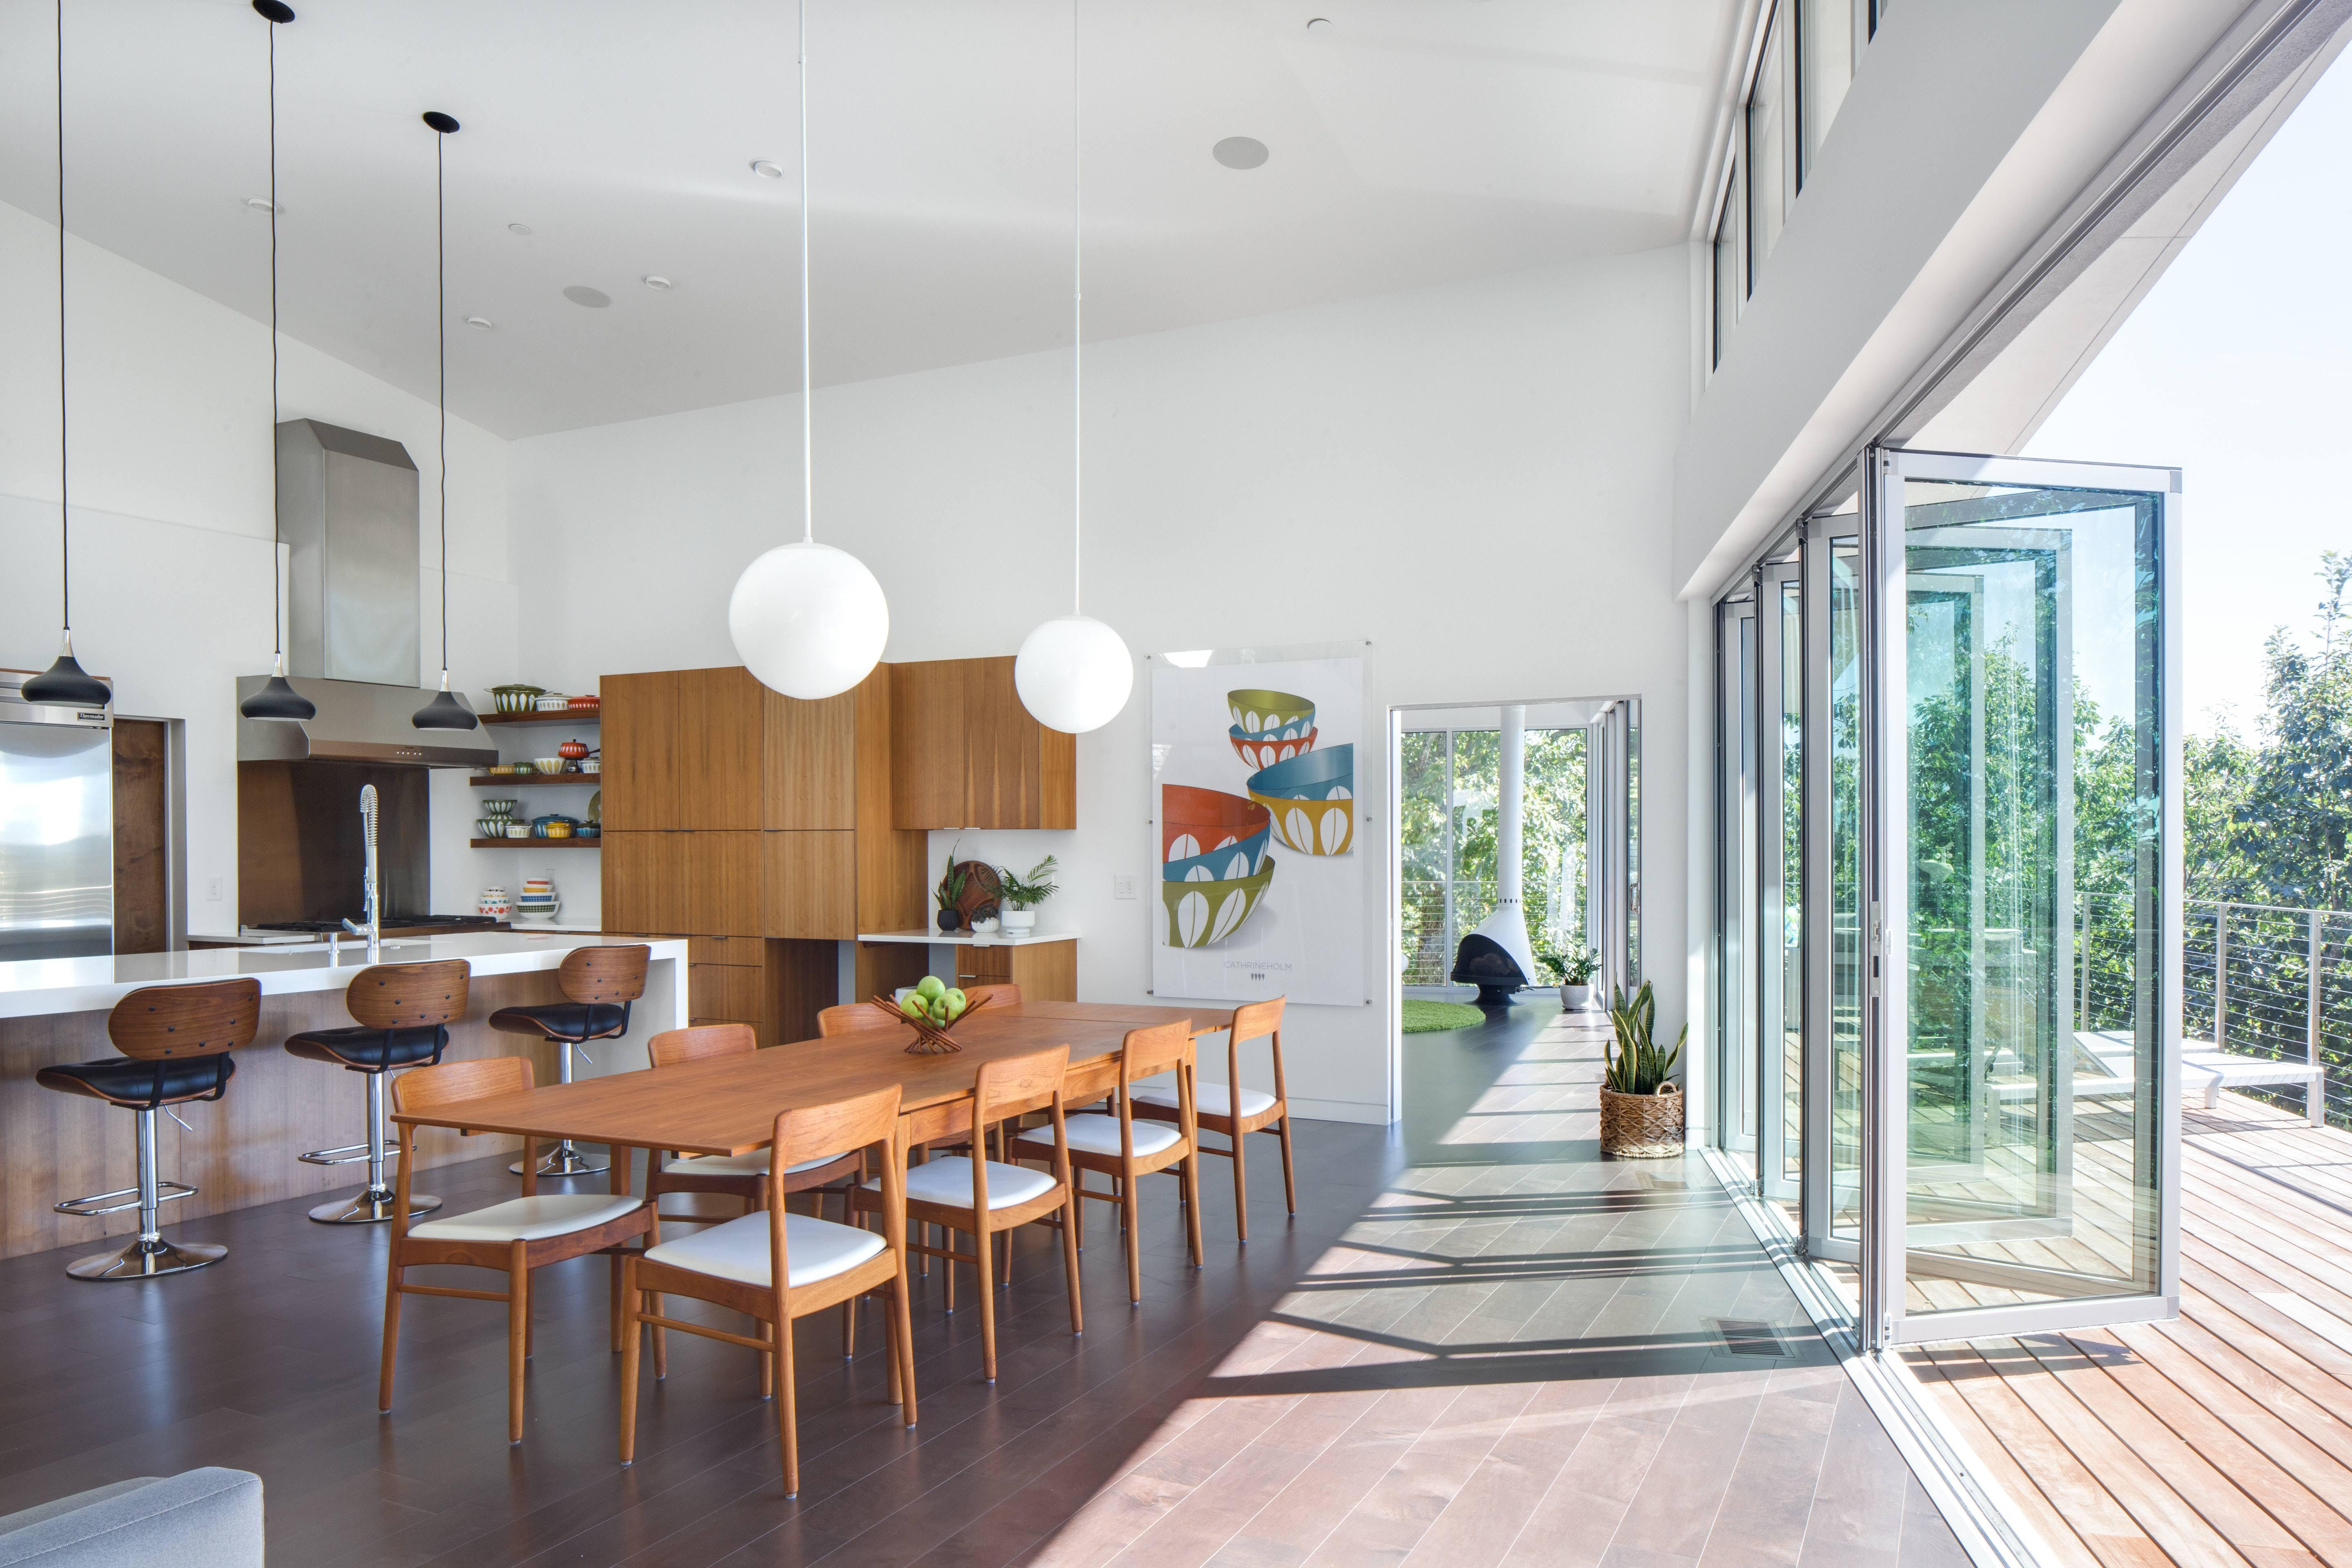 How To Master Mid Century Modern Renovation Tip One Modernize The Glass Walls Nanawall